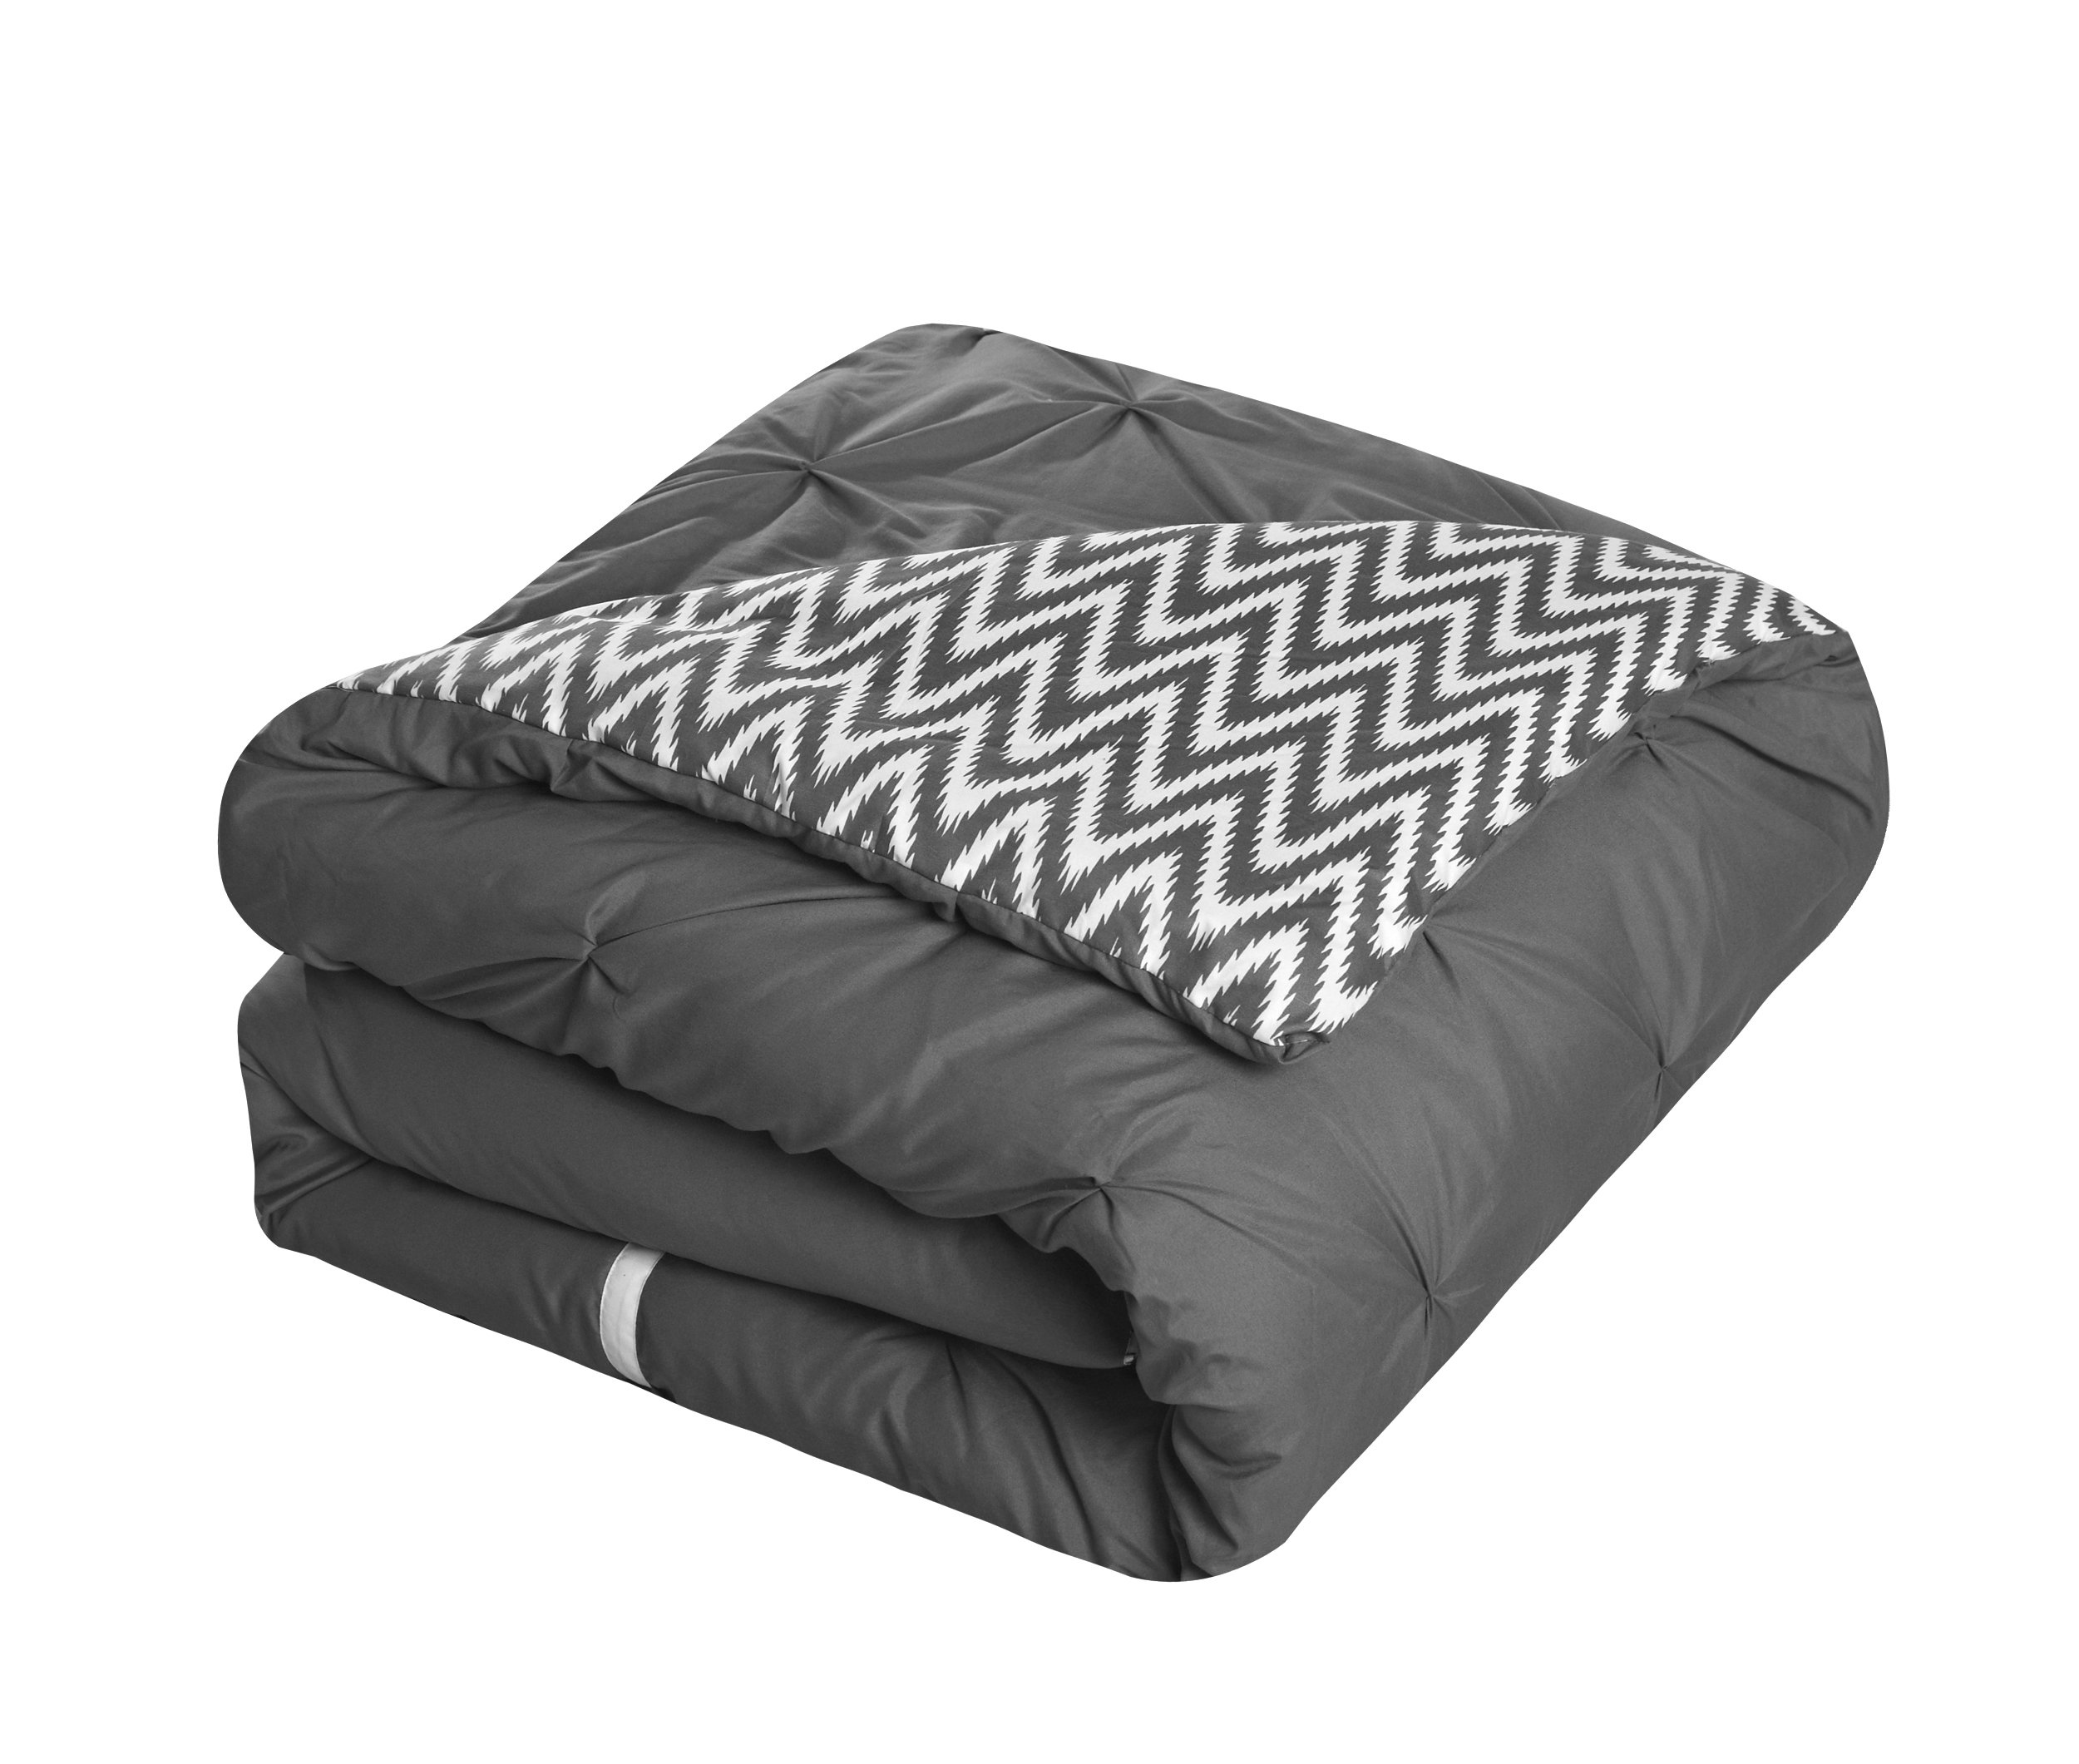 Chic Home CS0586-AN 20 Piece Jacksonville Complete Bed Room In A Bag Super Pinch Pleated Design Reversible Chevron Pattern Comforter Set, Sheet, Window Treatments And Decorative Pillows, Queen, Grey by Chic Home (Image #4)